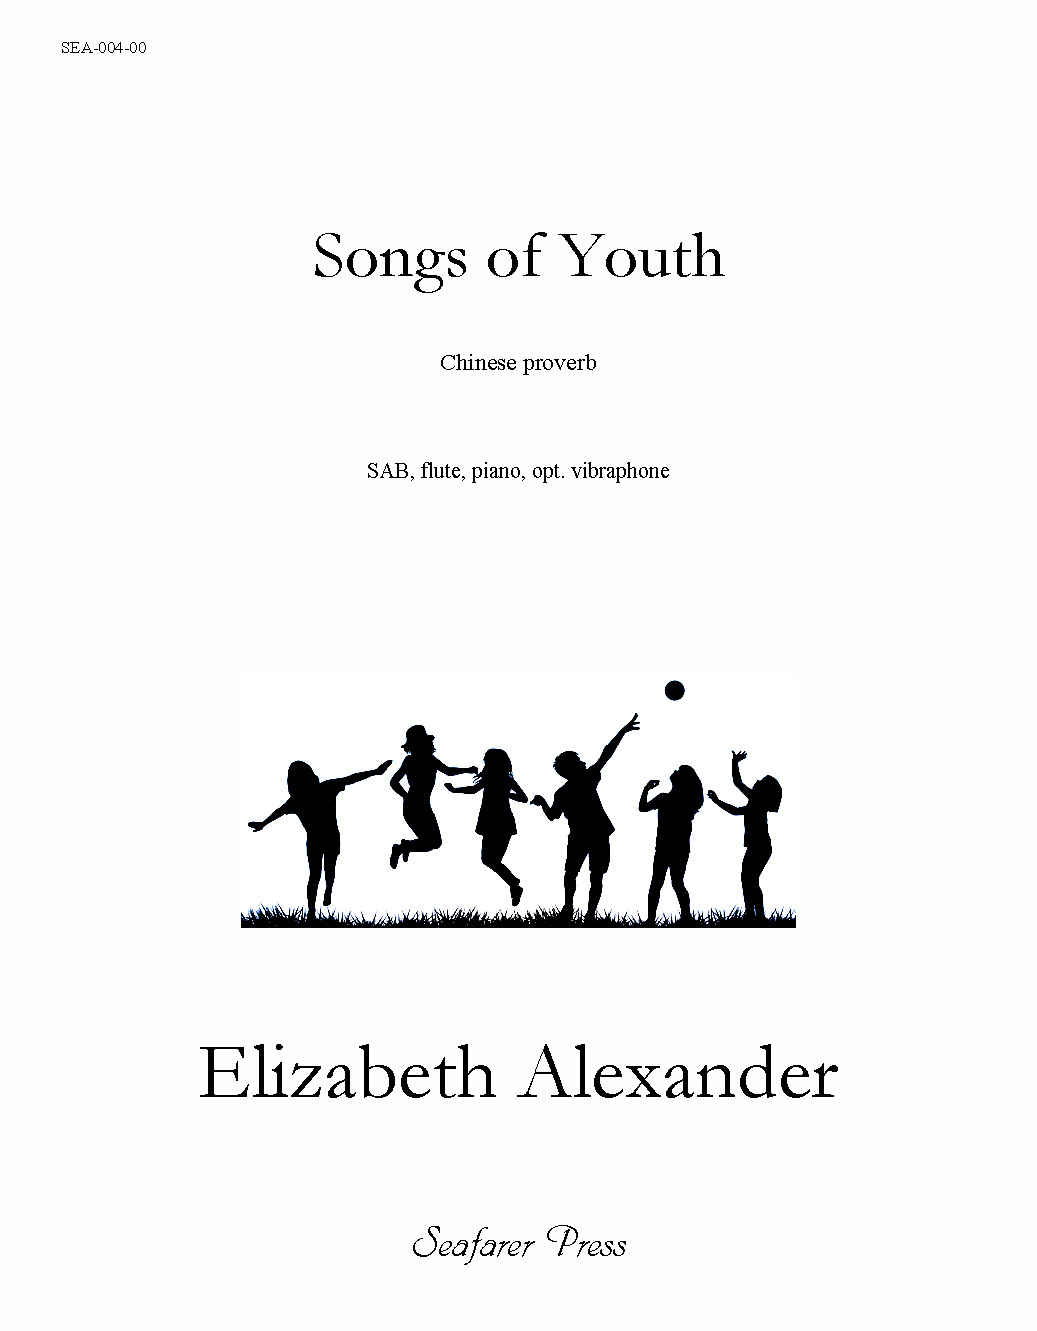 SEA-004-00 - Songs of Youth